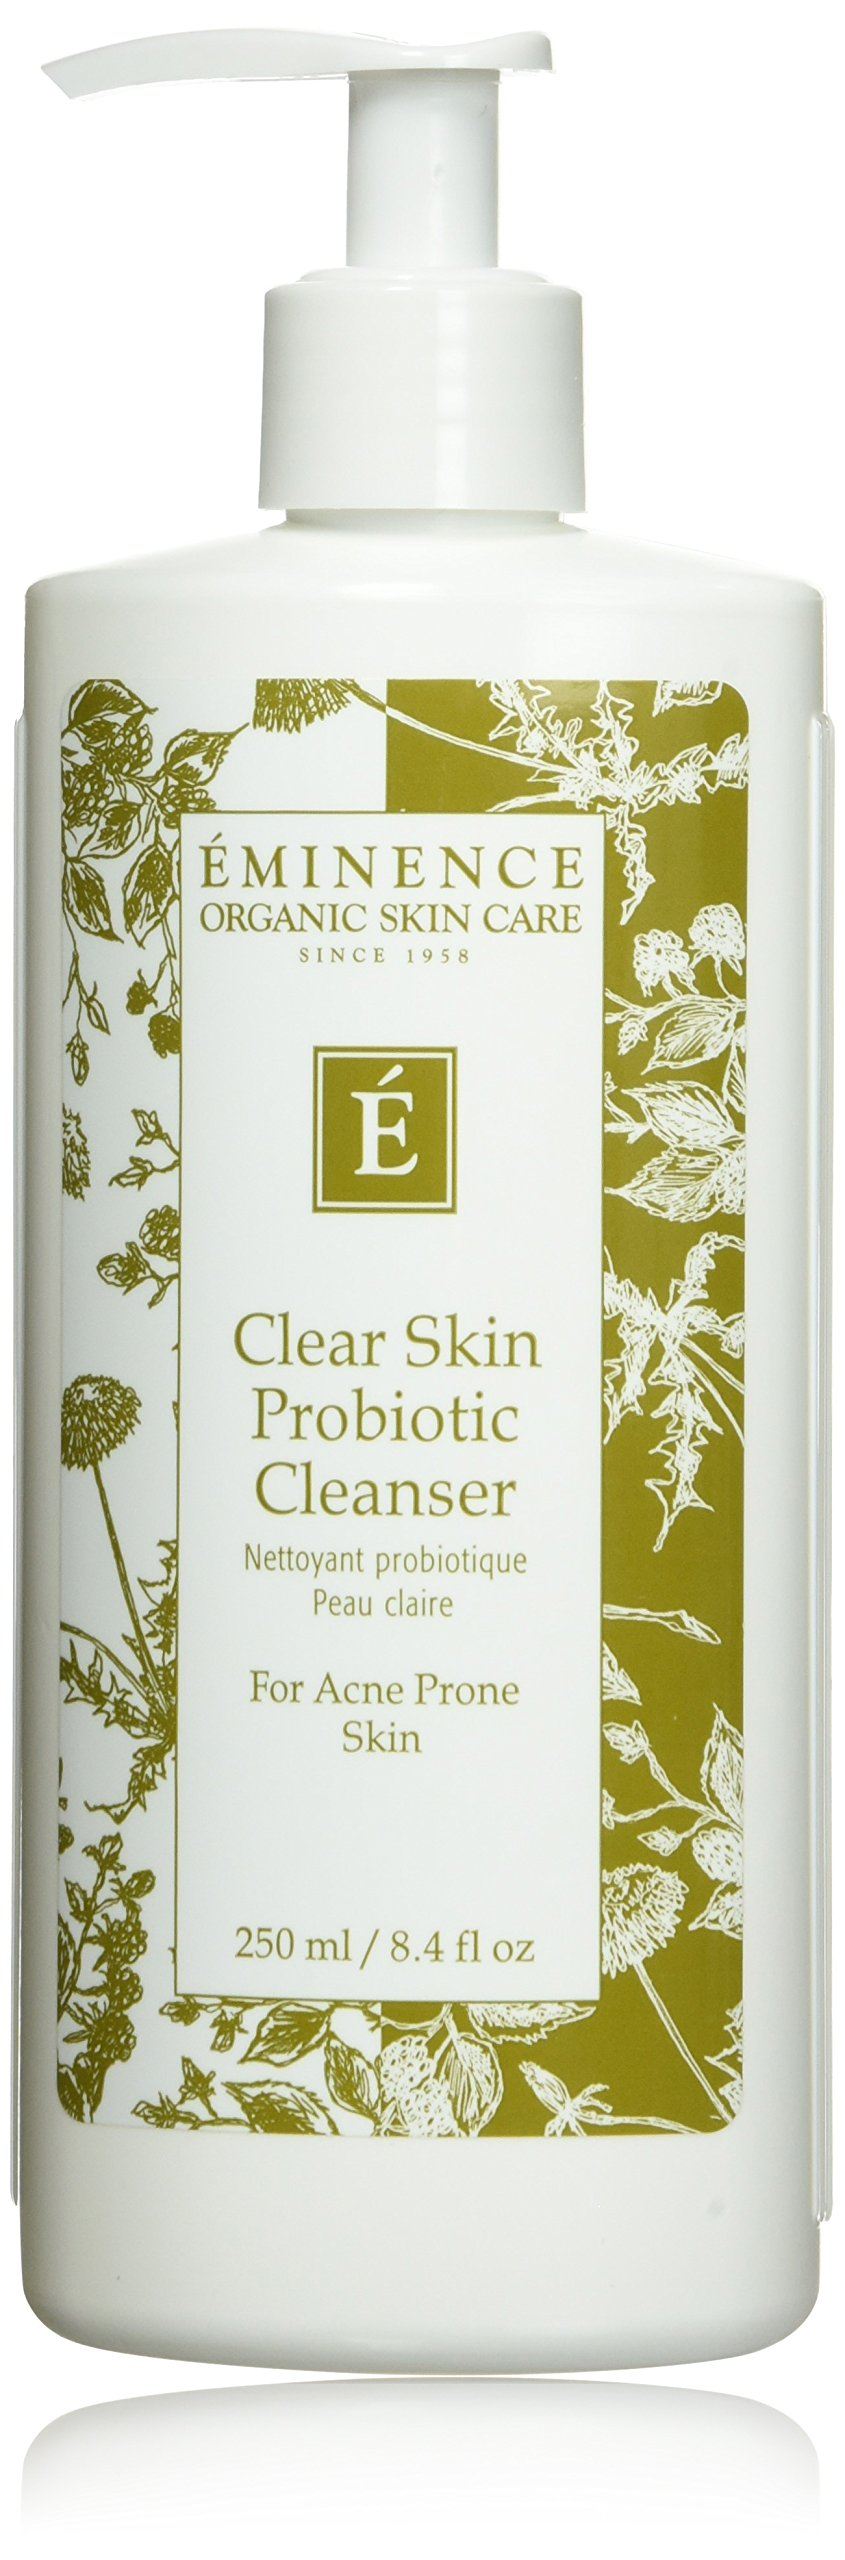 Eminence Clear Skin Probiotic Cleanser, 8.4 Ounce by Eminence